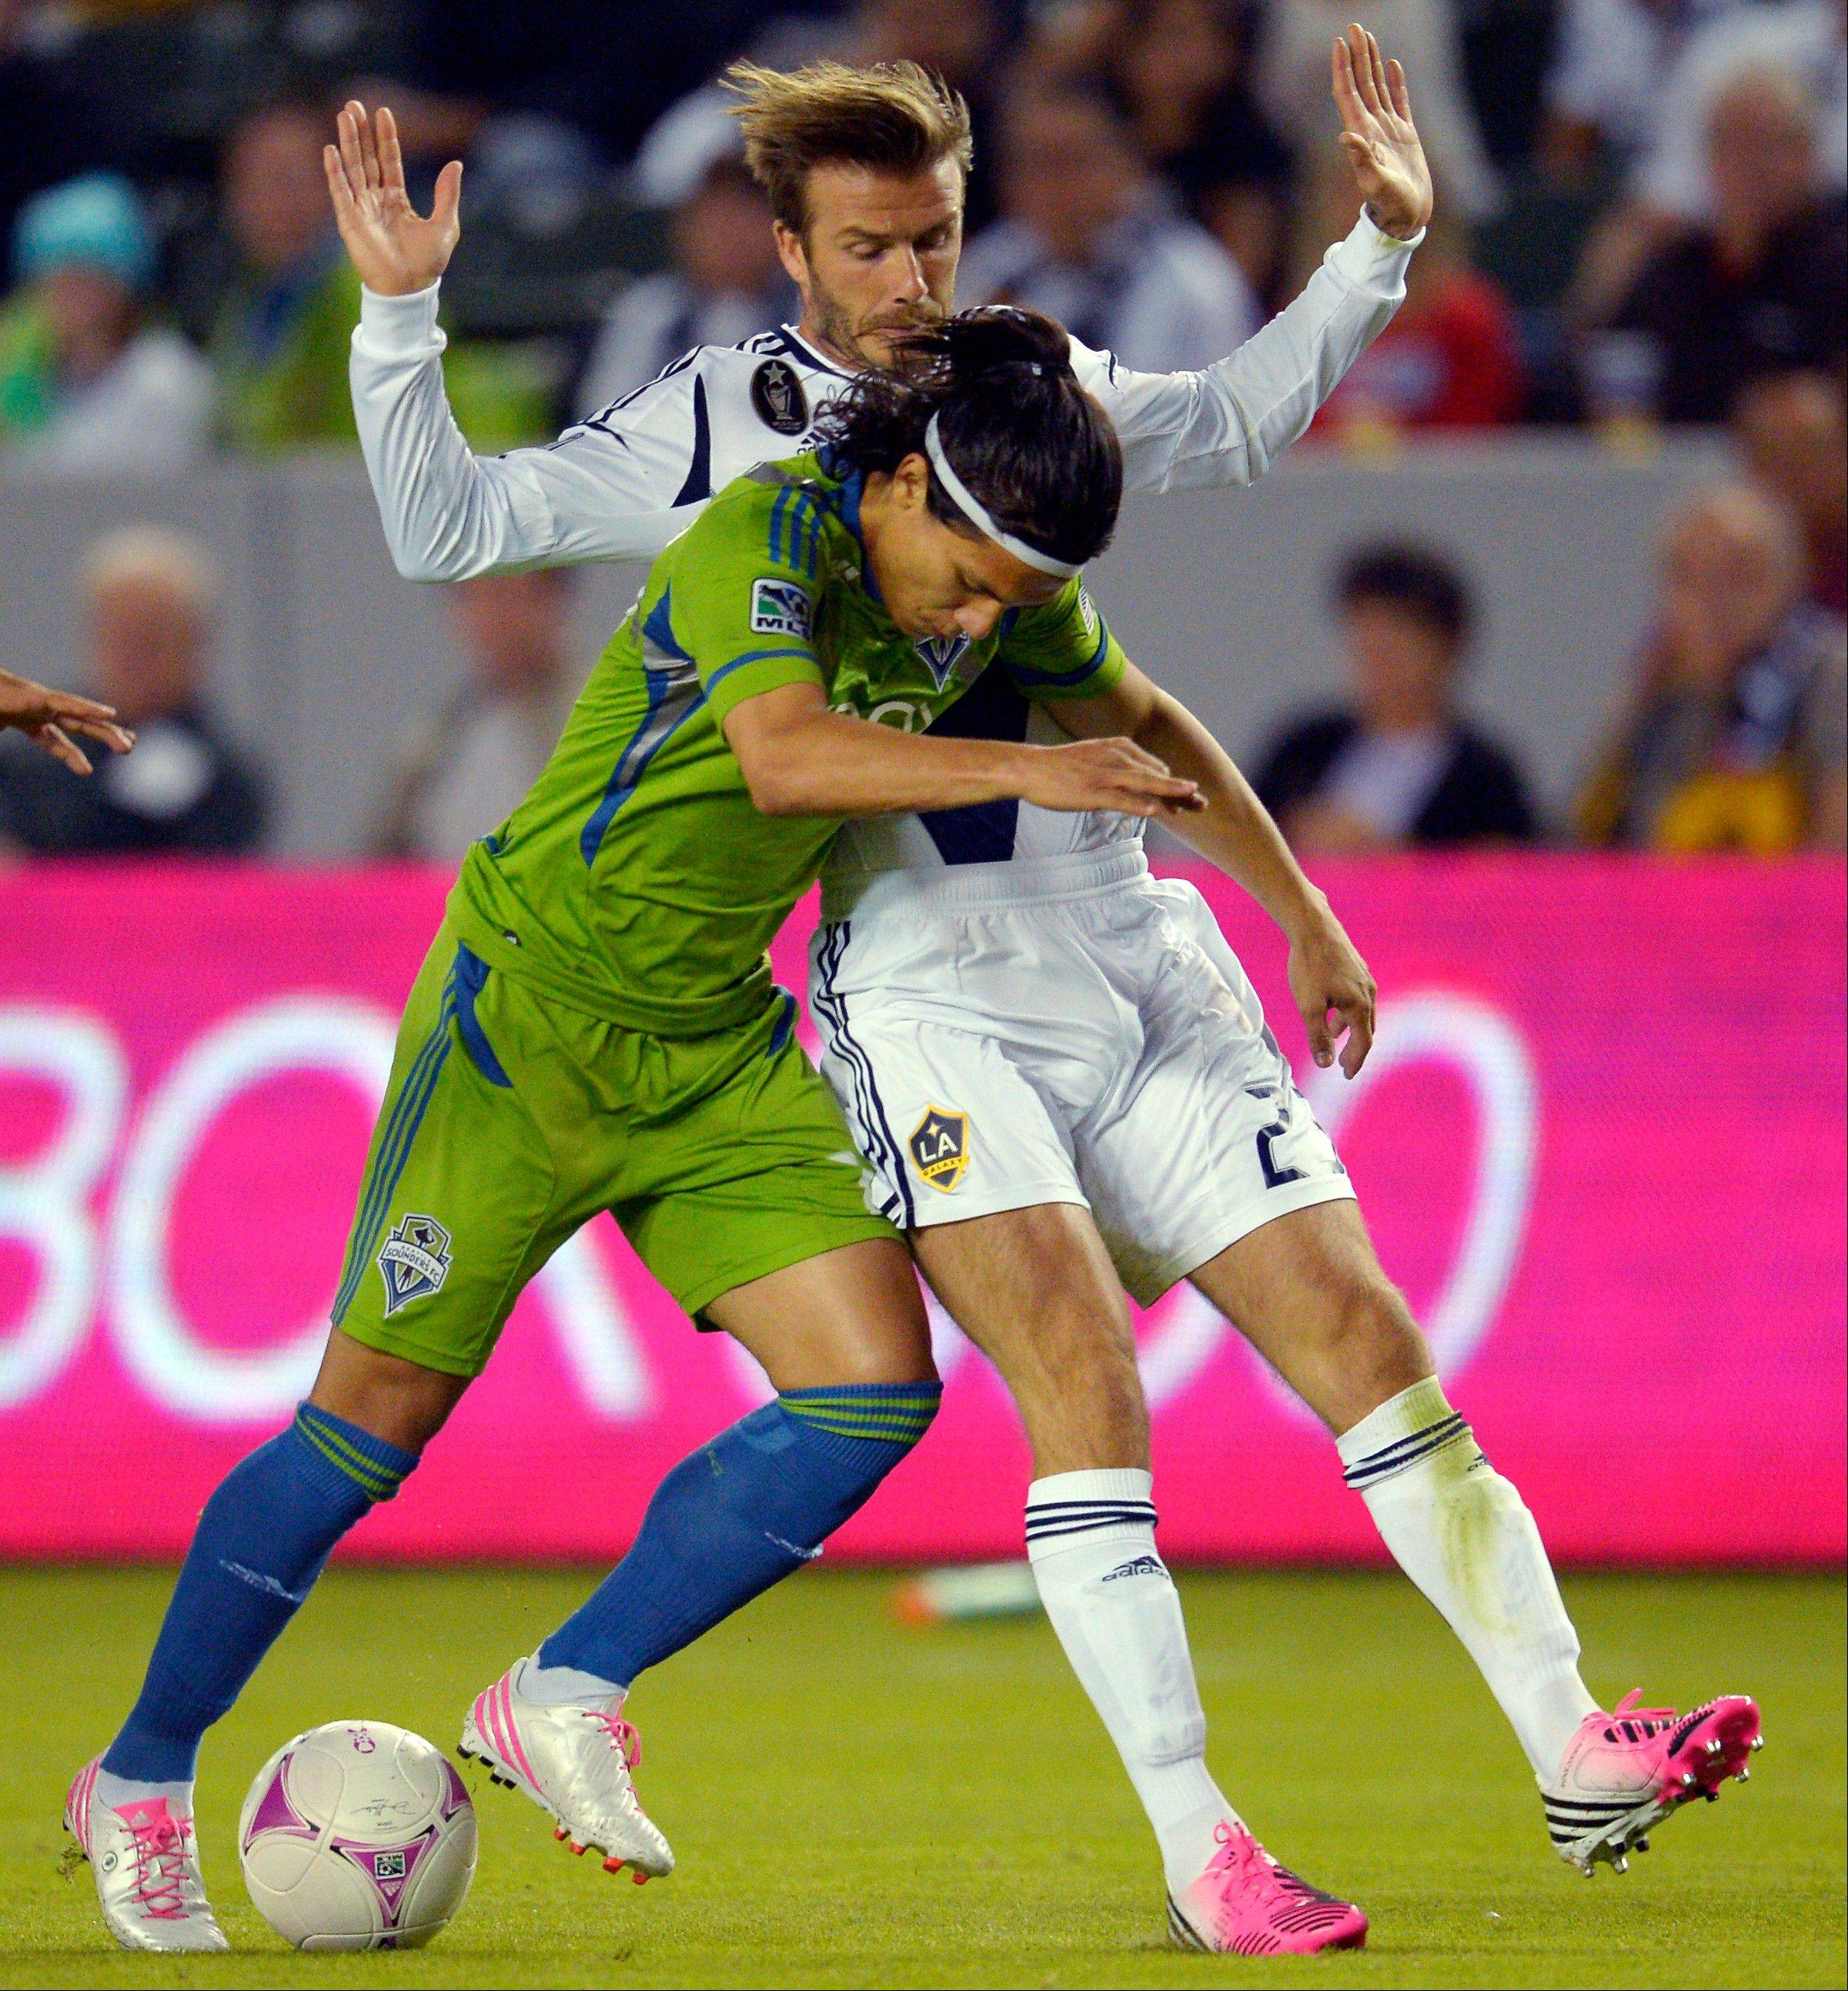 Seattle Sounders FC forward Fredy Montero, left, and Los Angeles Galaxy midfielder David Beckham battle for the ball during the first half of their MLS soccer match, Sunday, Oct. 28, 2012, in Carson, Calif. The Galaxy won 1-0.